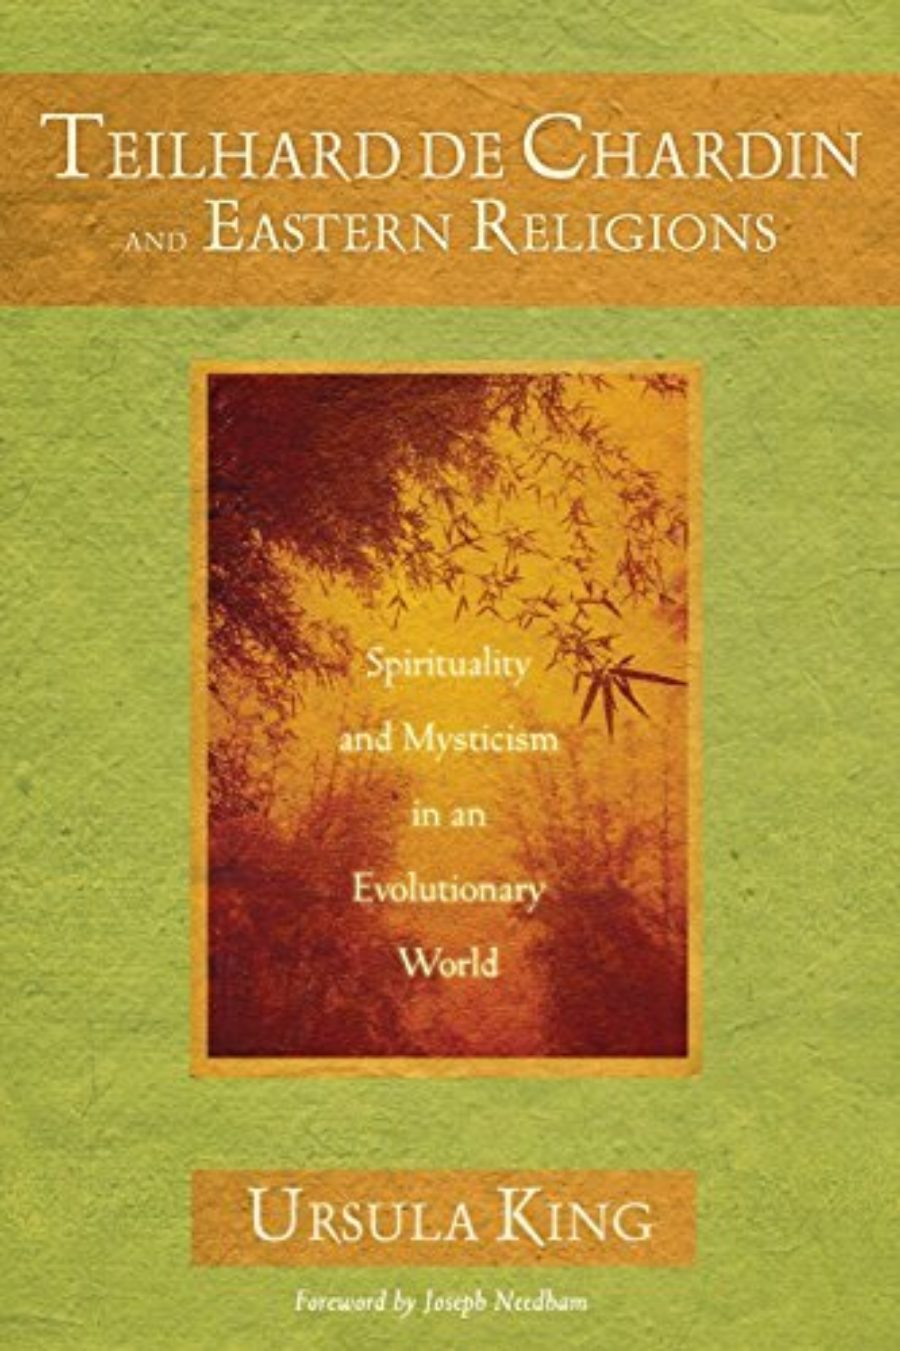 Cover of Teilhard de Chardin and Eastern Religions: Spirituality and Mysticism in an Evolutionary World